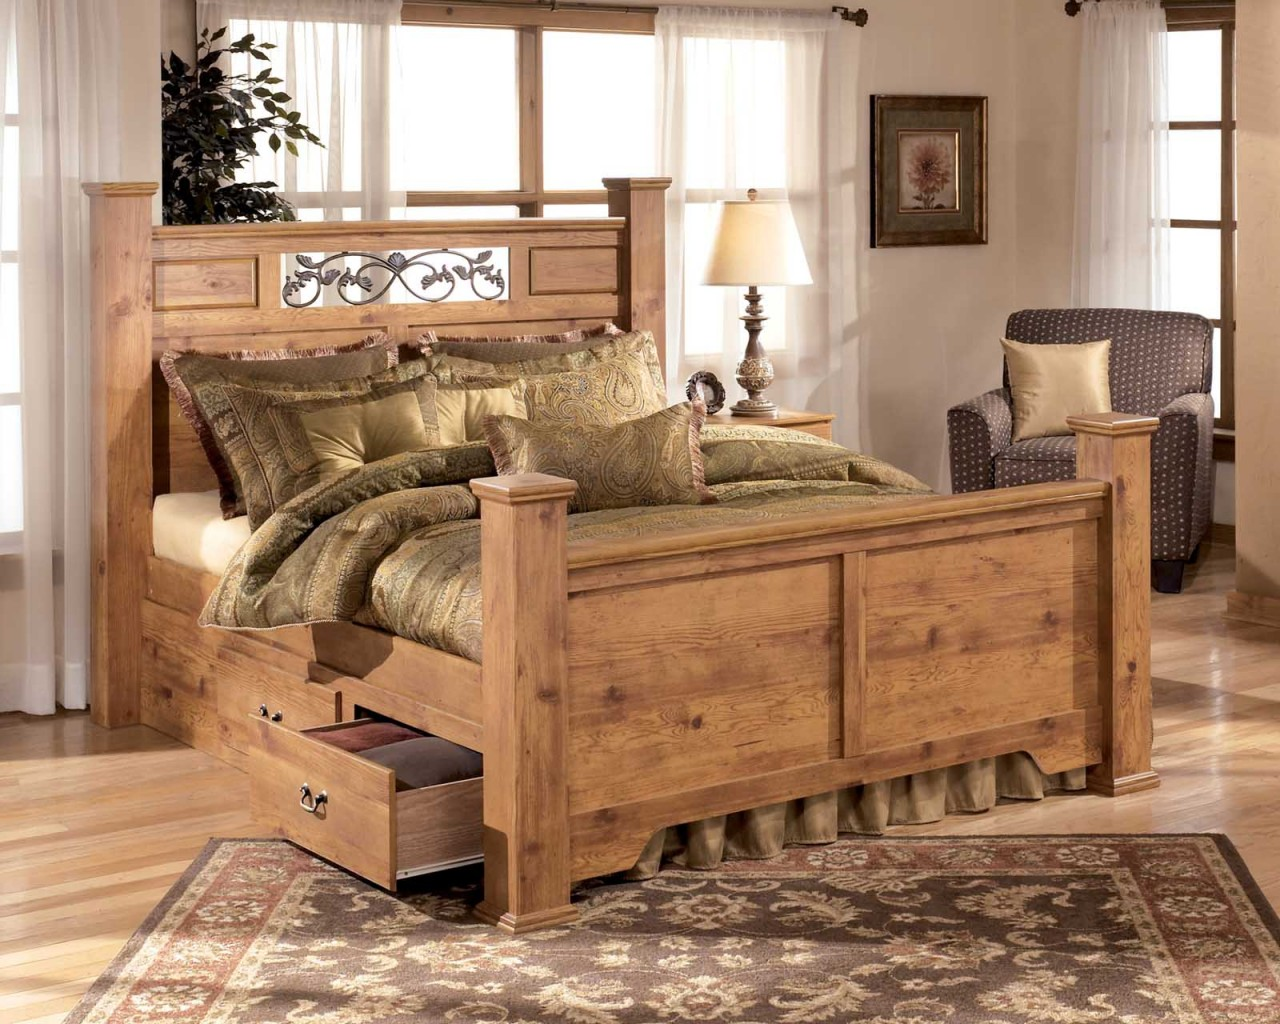 pine bedroom furniture set pine bedroom furniture for that classic country look BLFAGPT